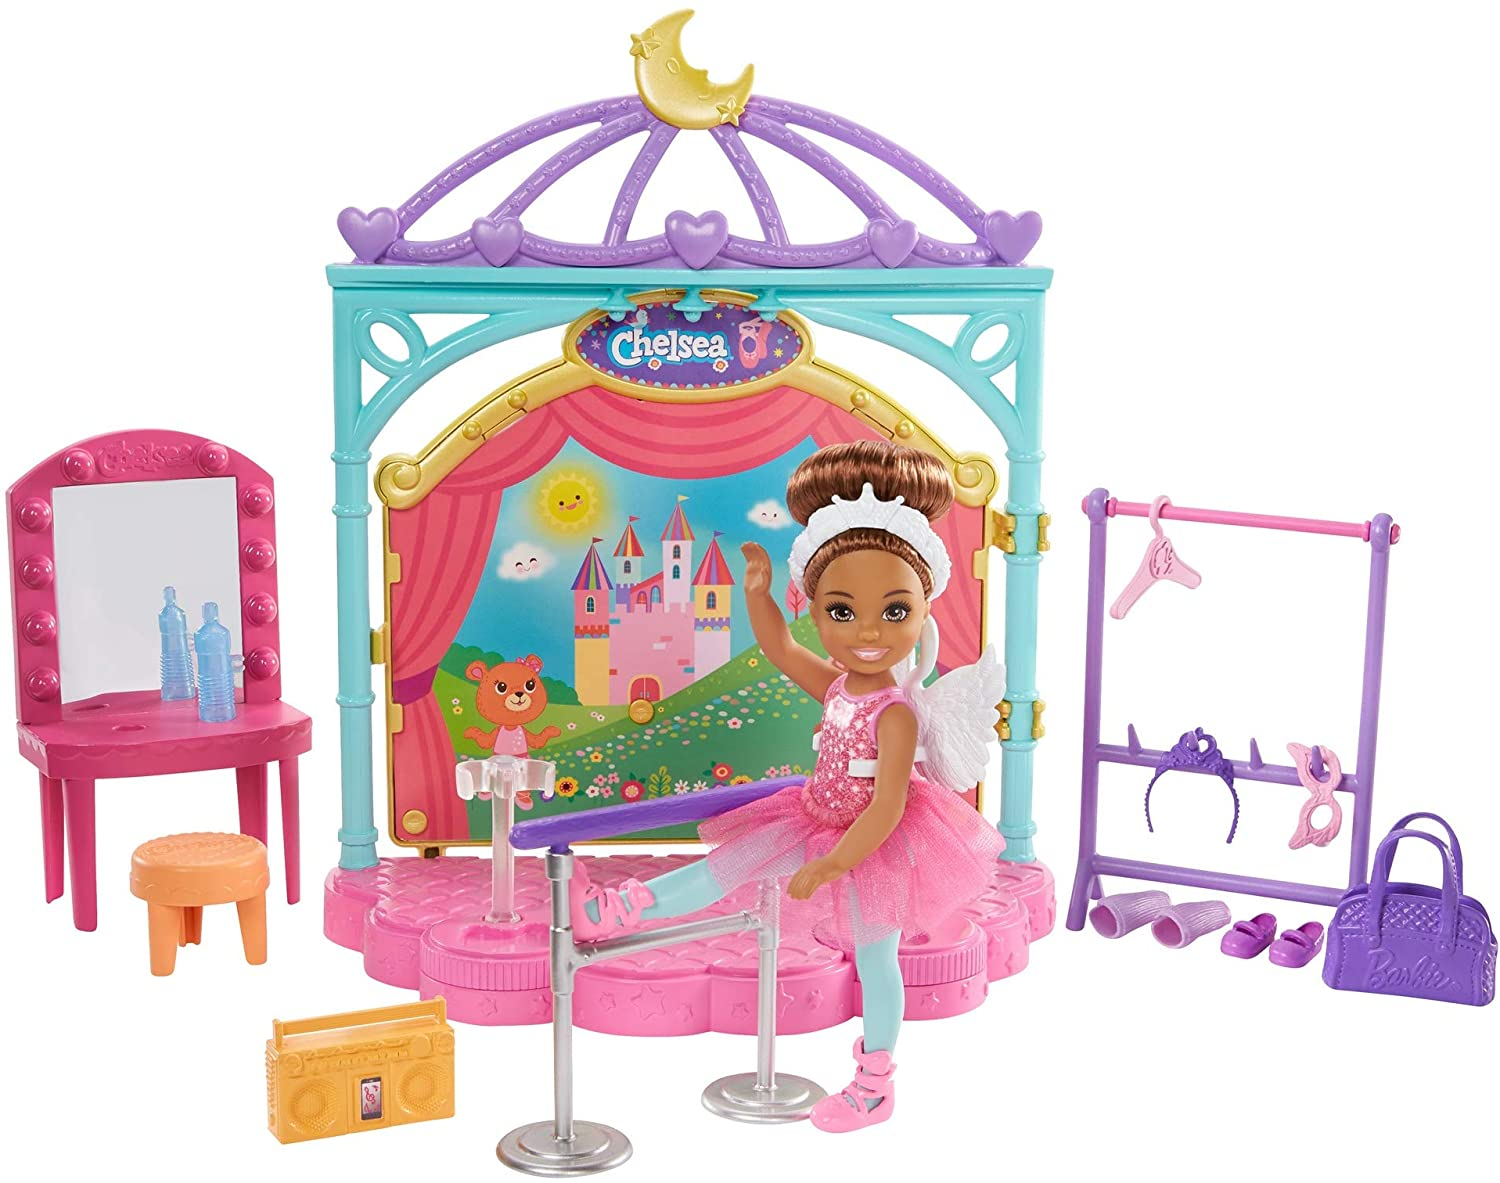 Barbie Club Chelsea Dolls Ballet And Snack Cart Playsets Youloveit Com